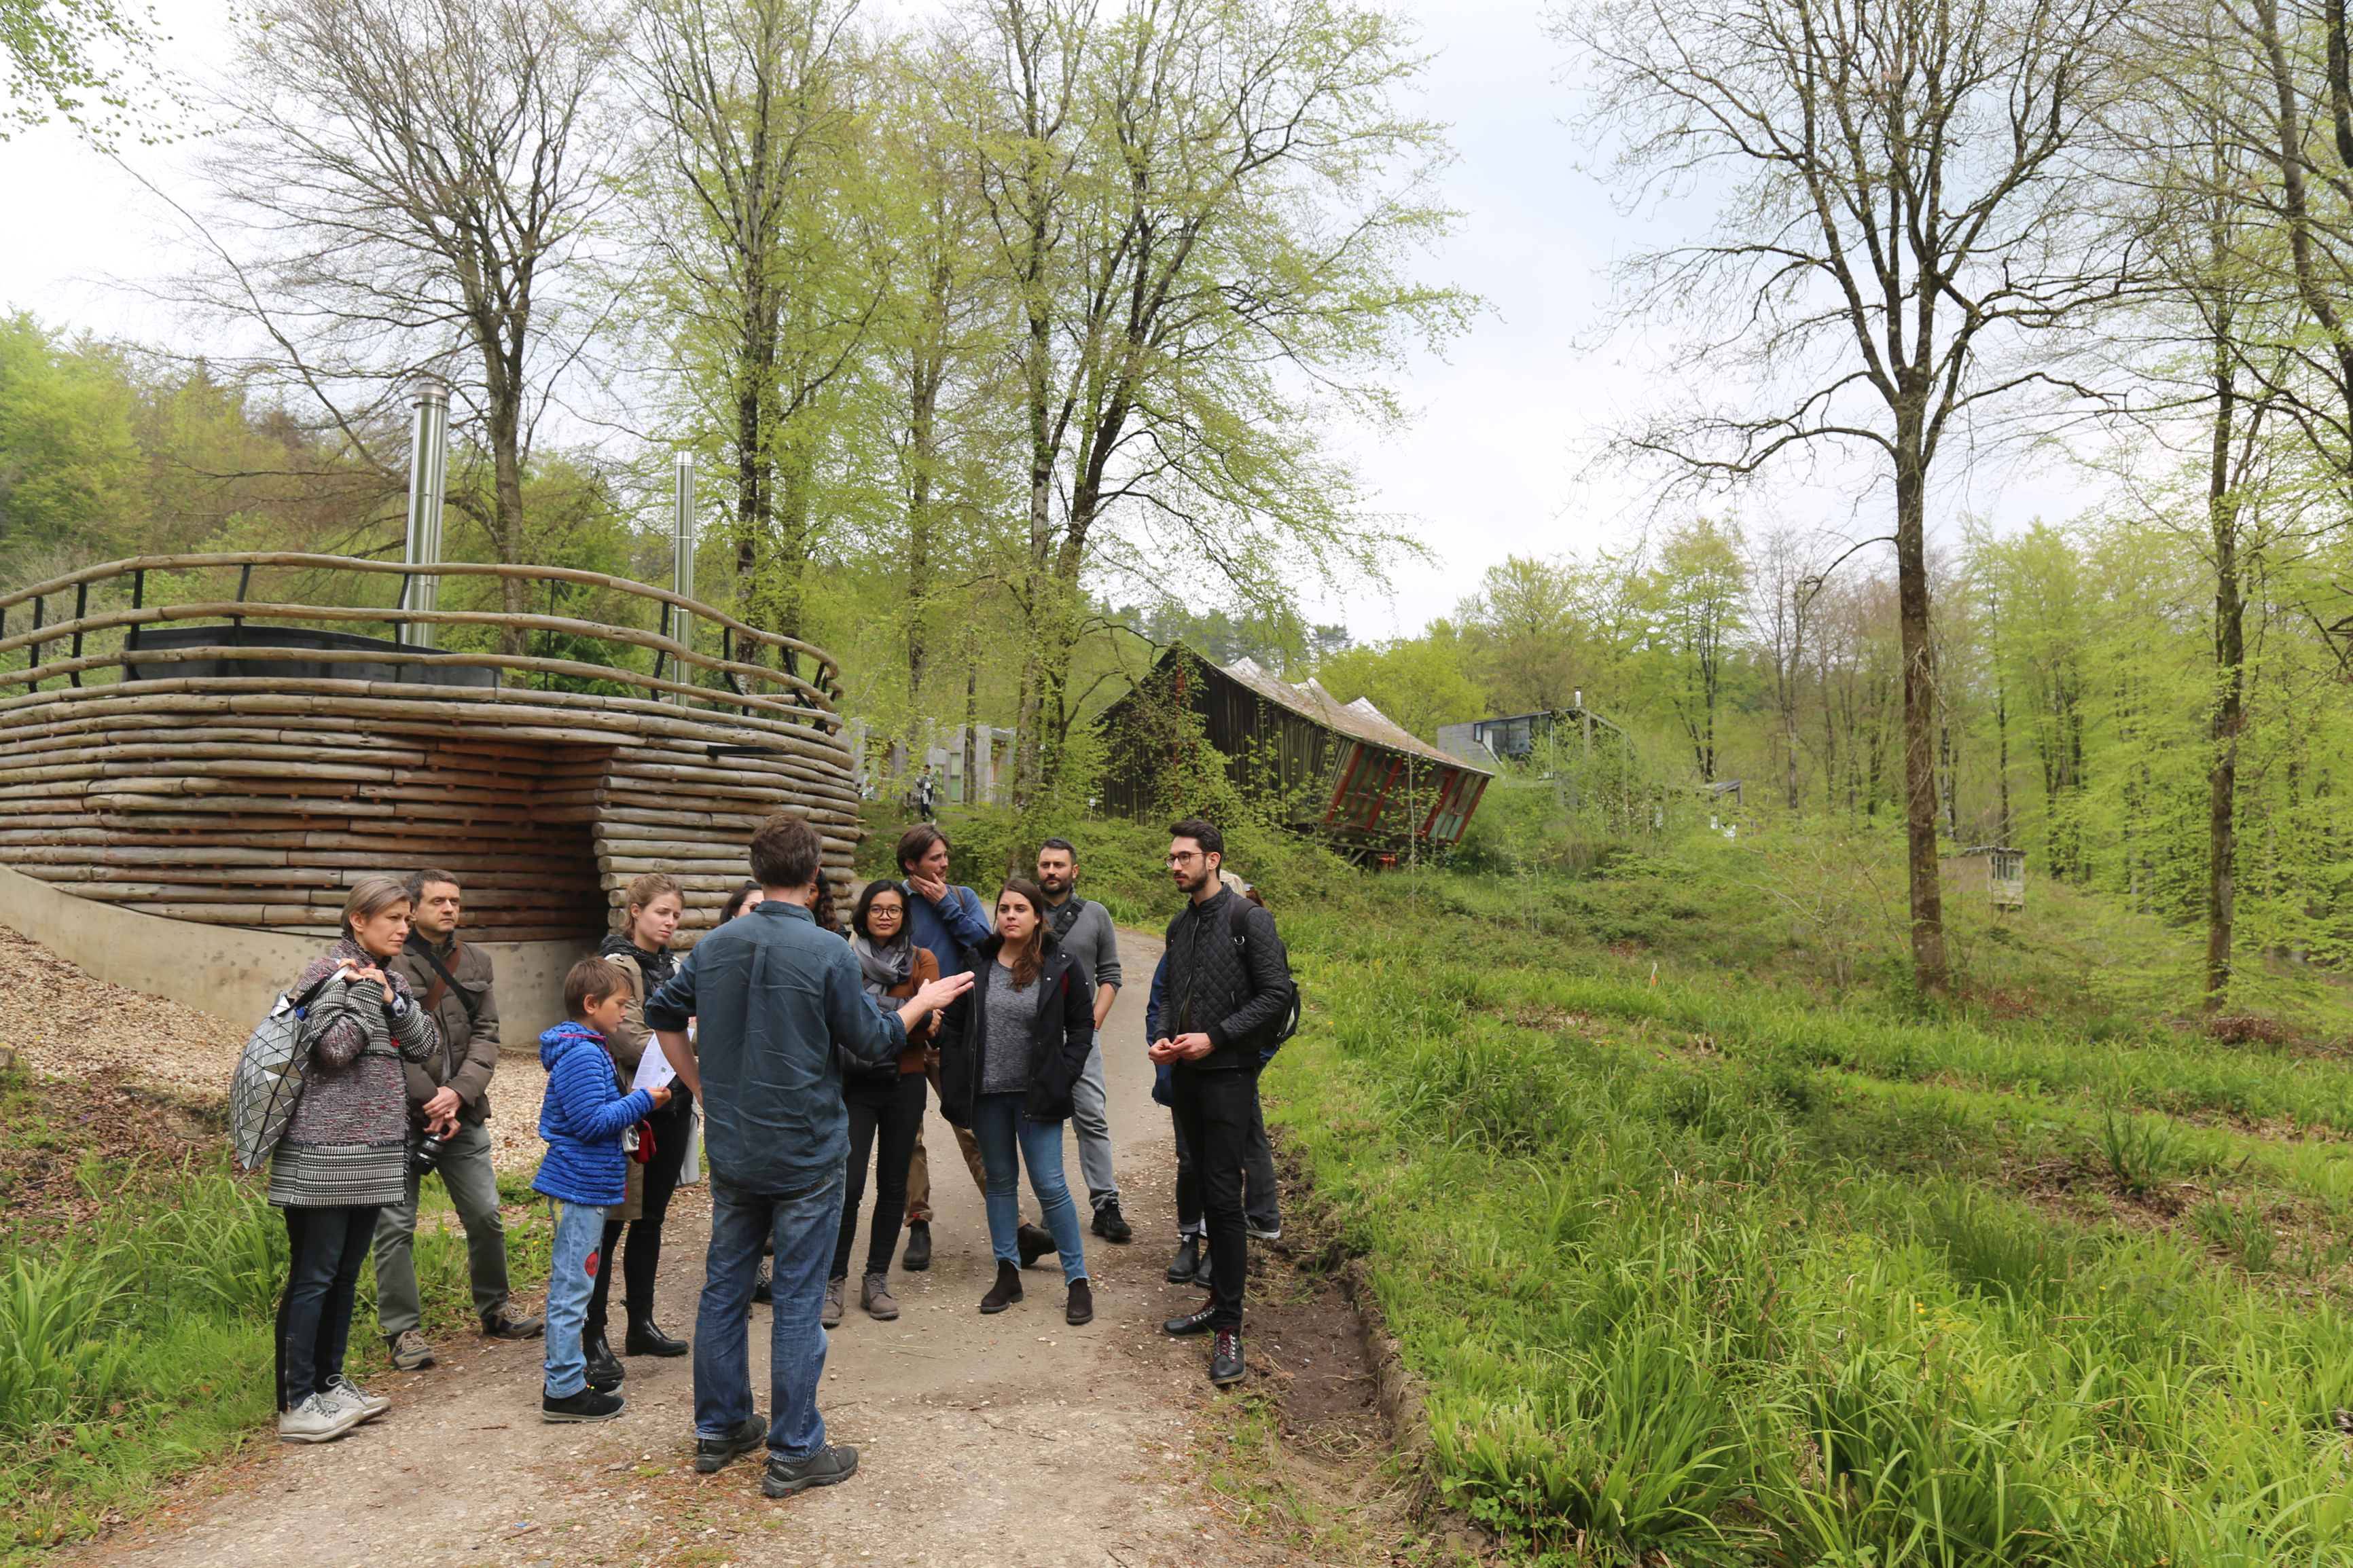 Hooke Park Members' Trip: Campus tour + foraging and forestry walks